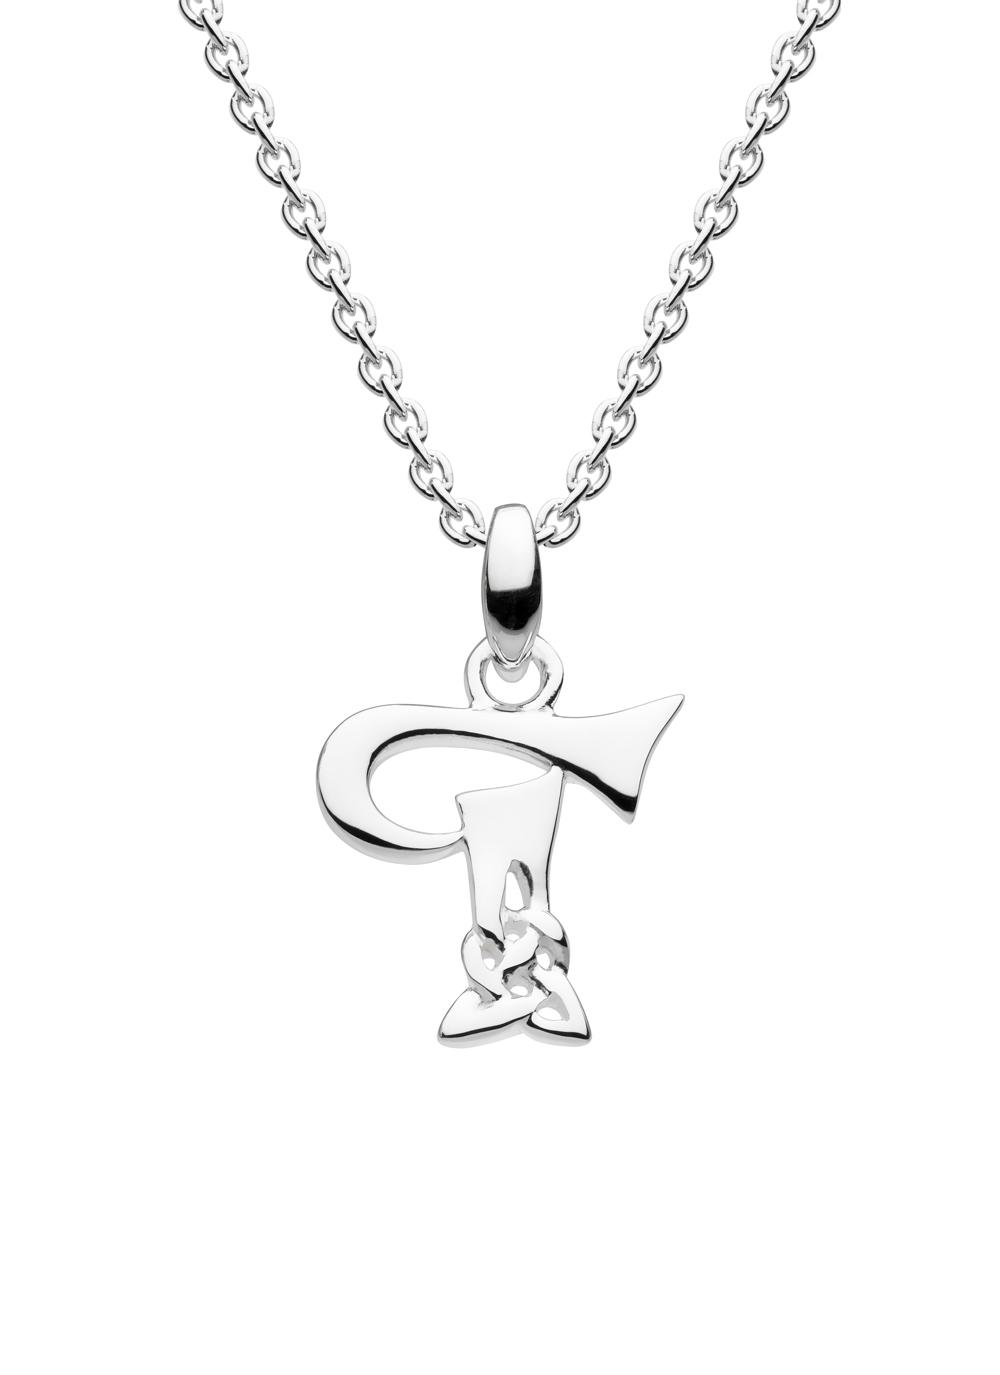 jewelry pendant gugoco bird charm brand letter necklace armenian trchnagir products t